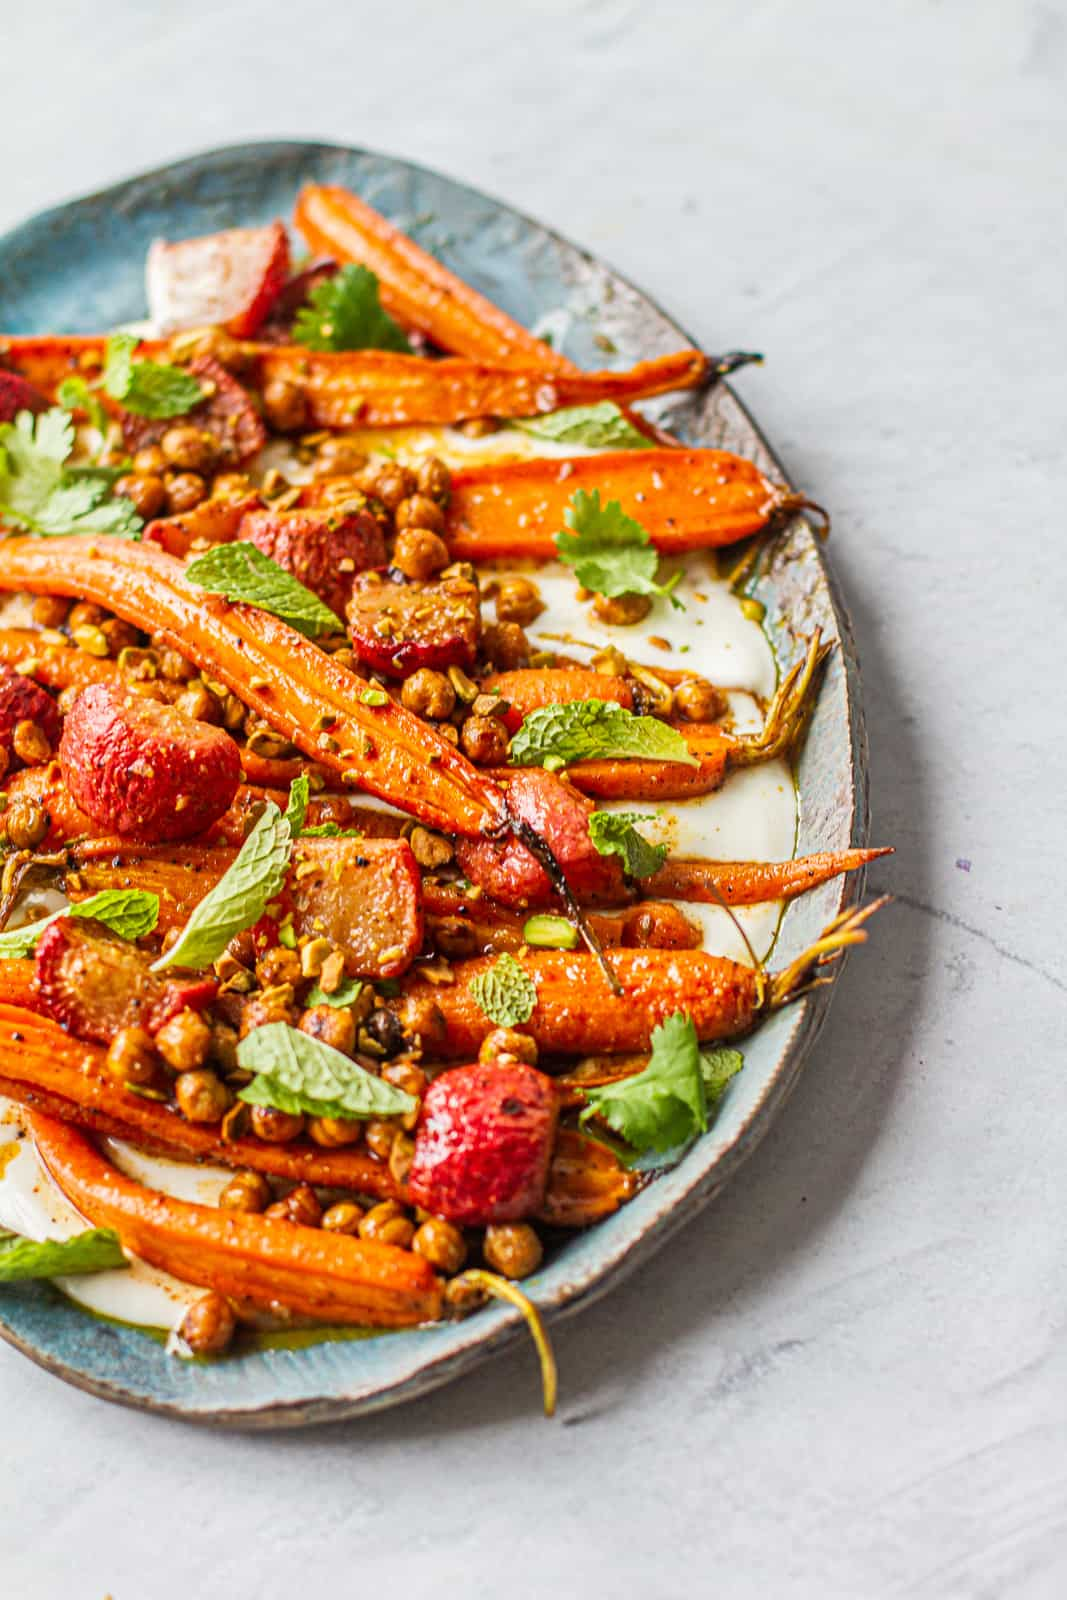 Close up of platter with moroccan-spiced carrot & radish salad over a napkin